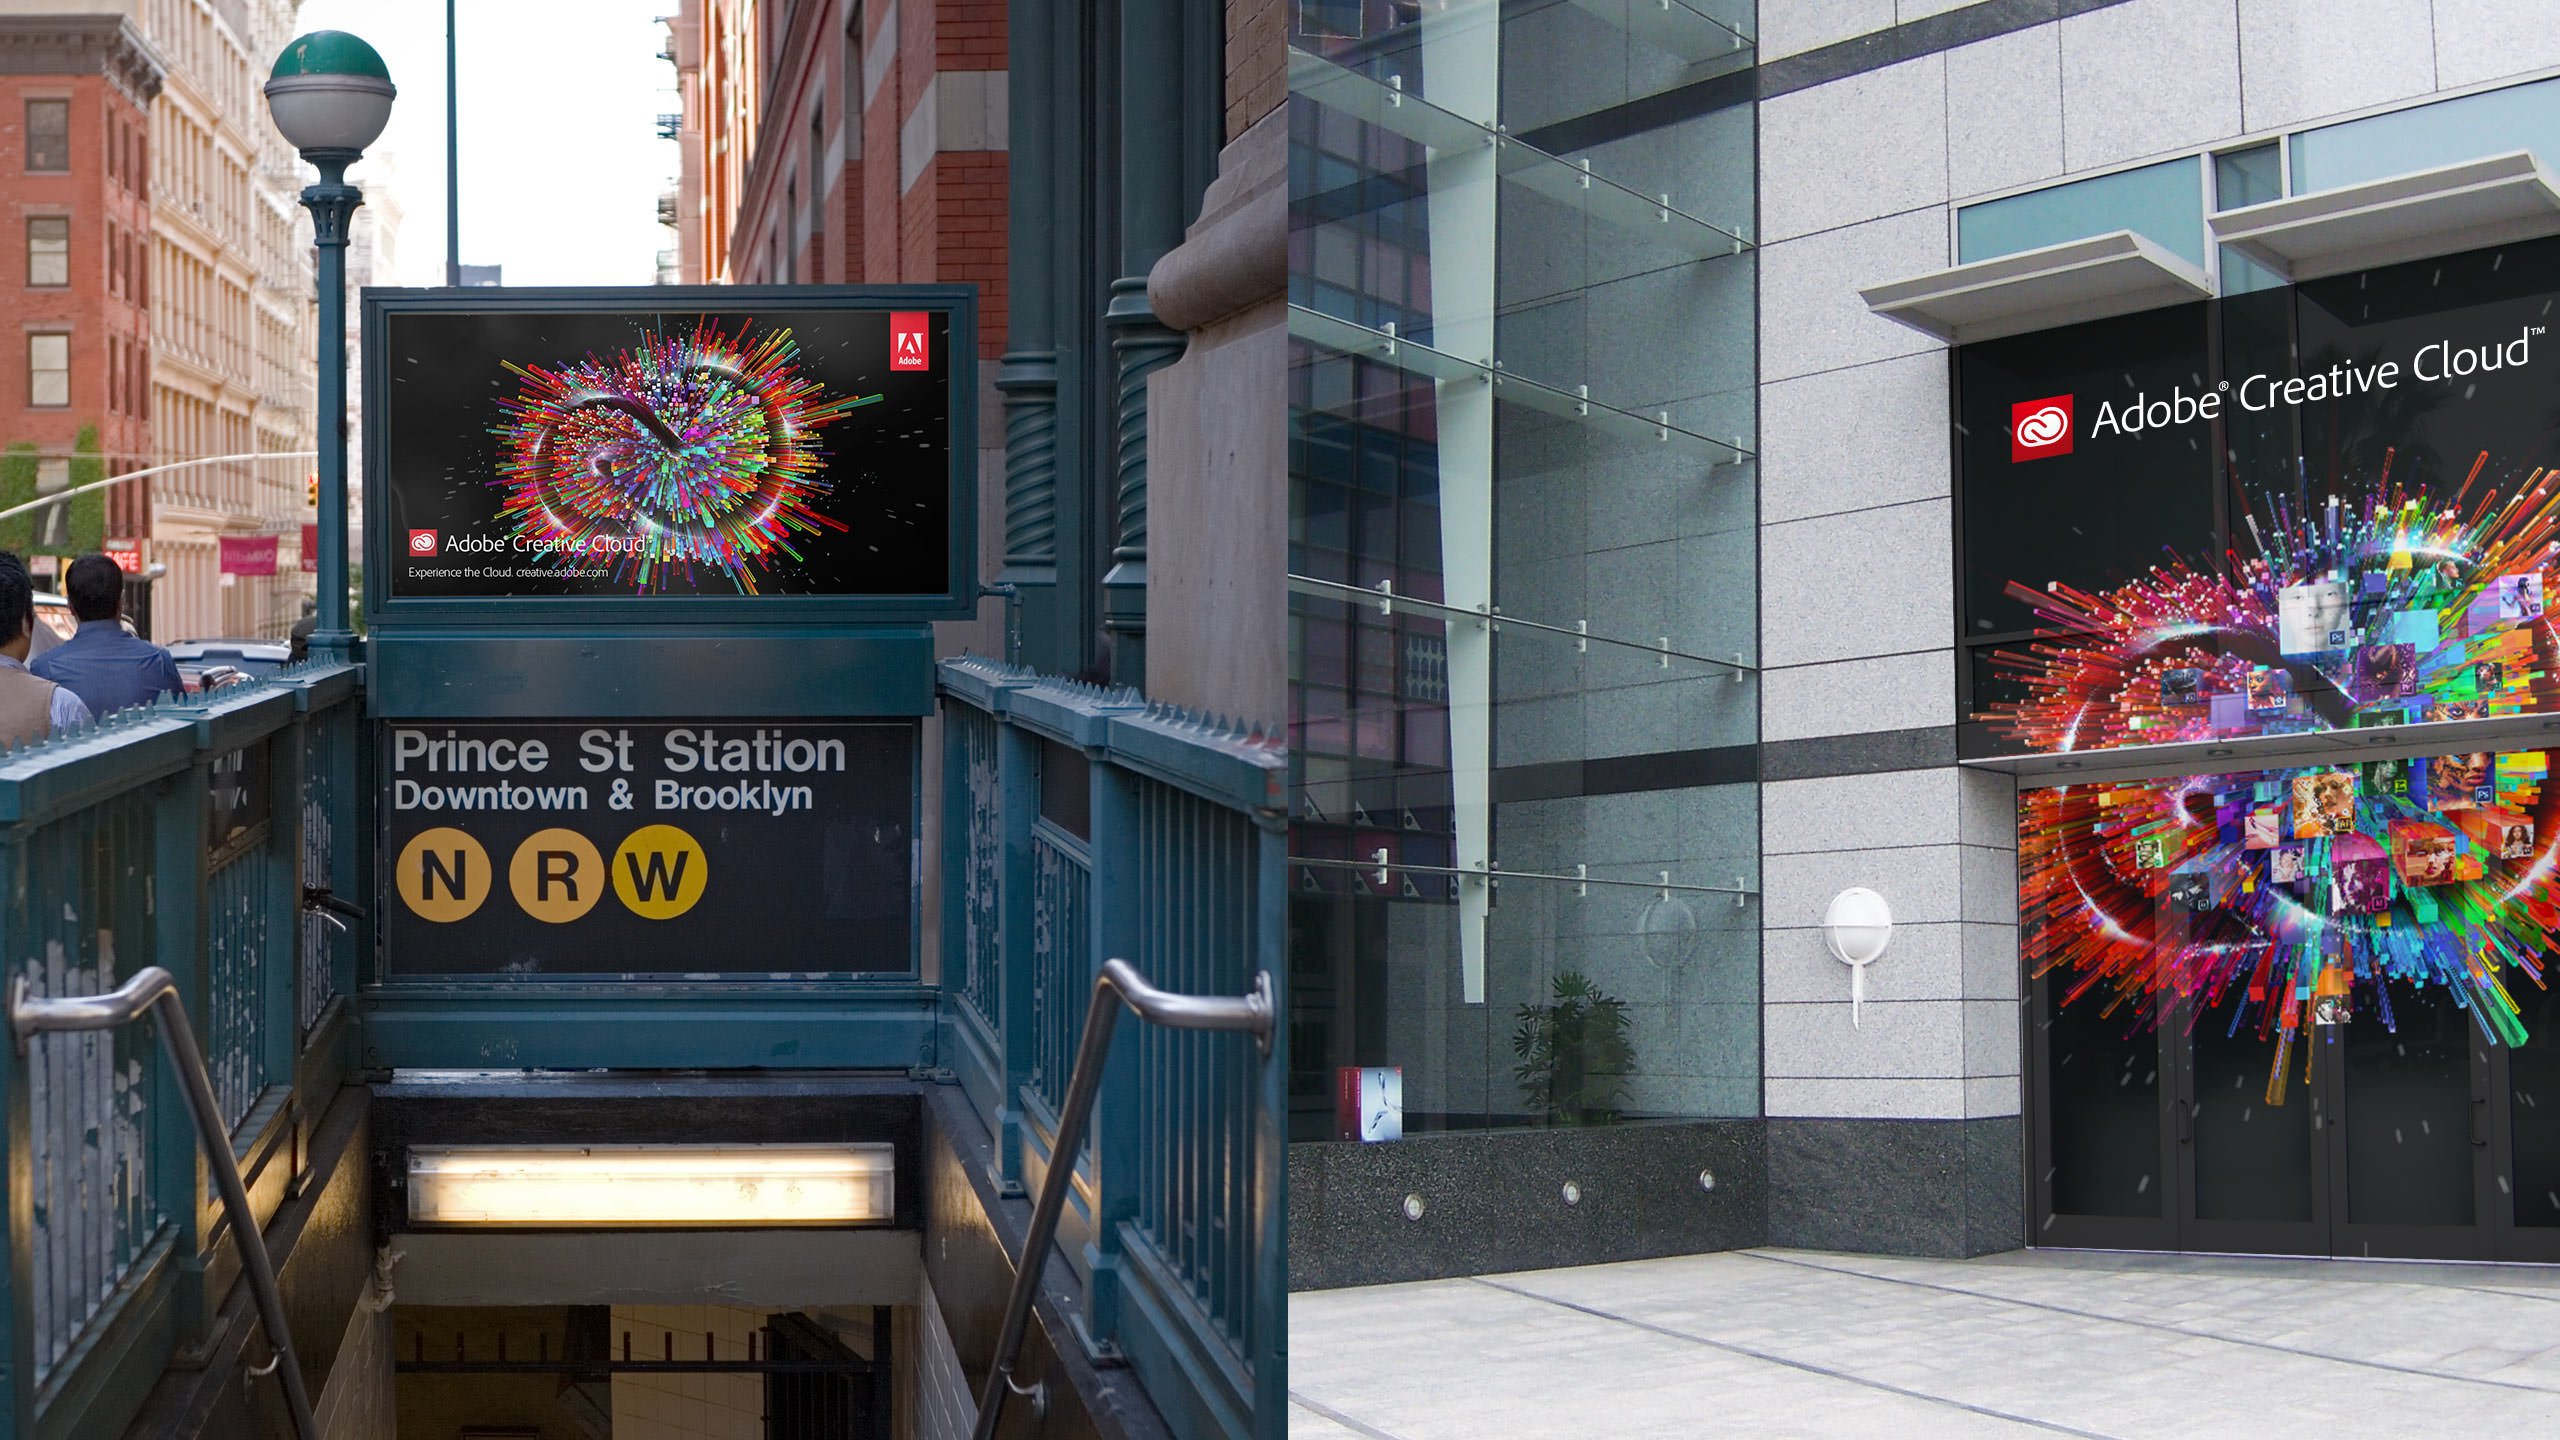 Adobe Creative Cloud 2013 Identity on Subway and Office Campaign